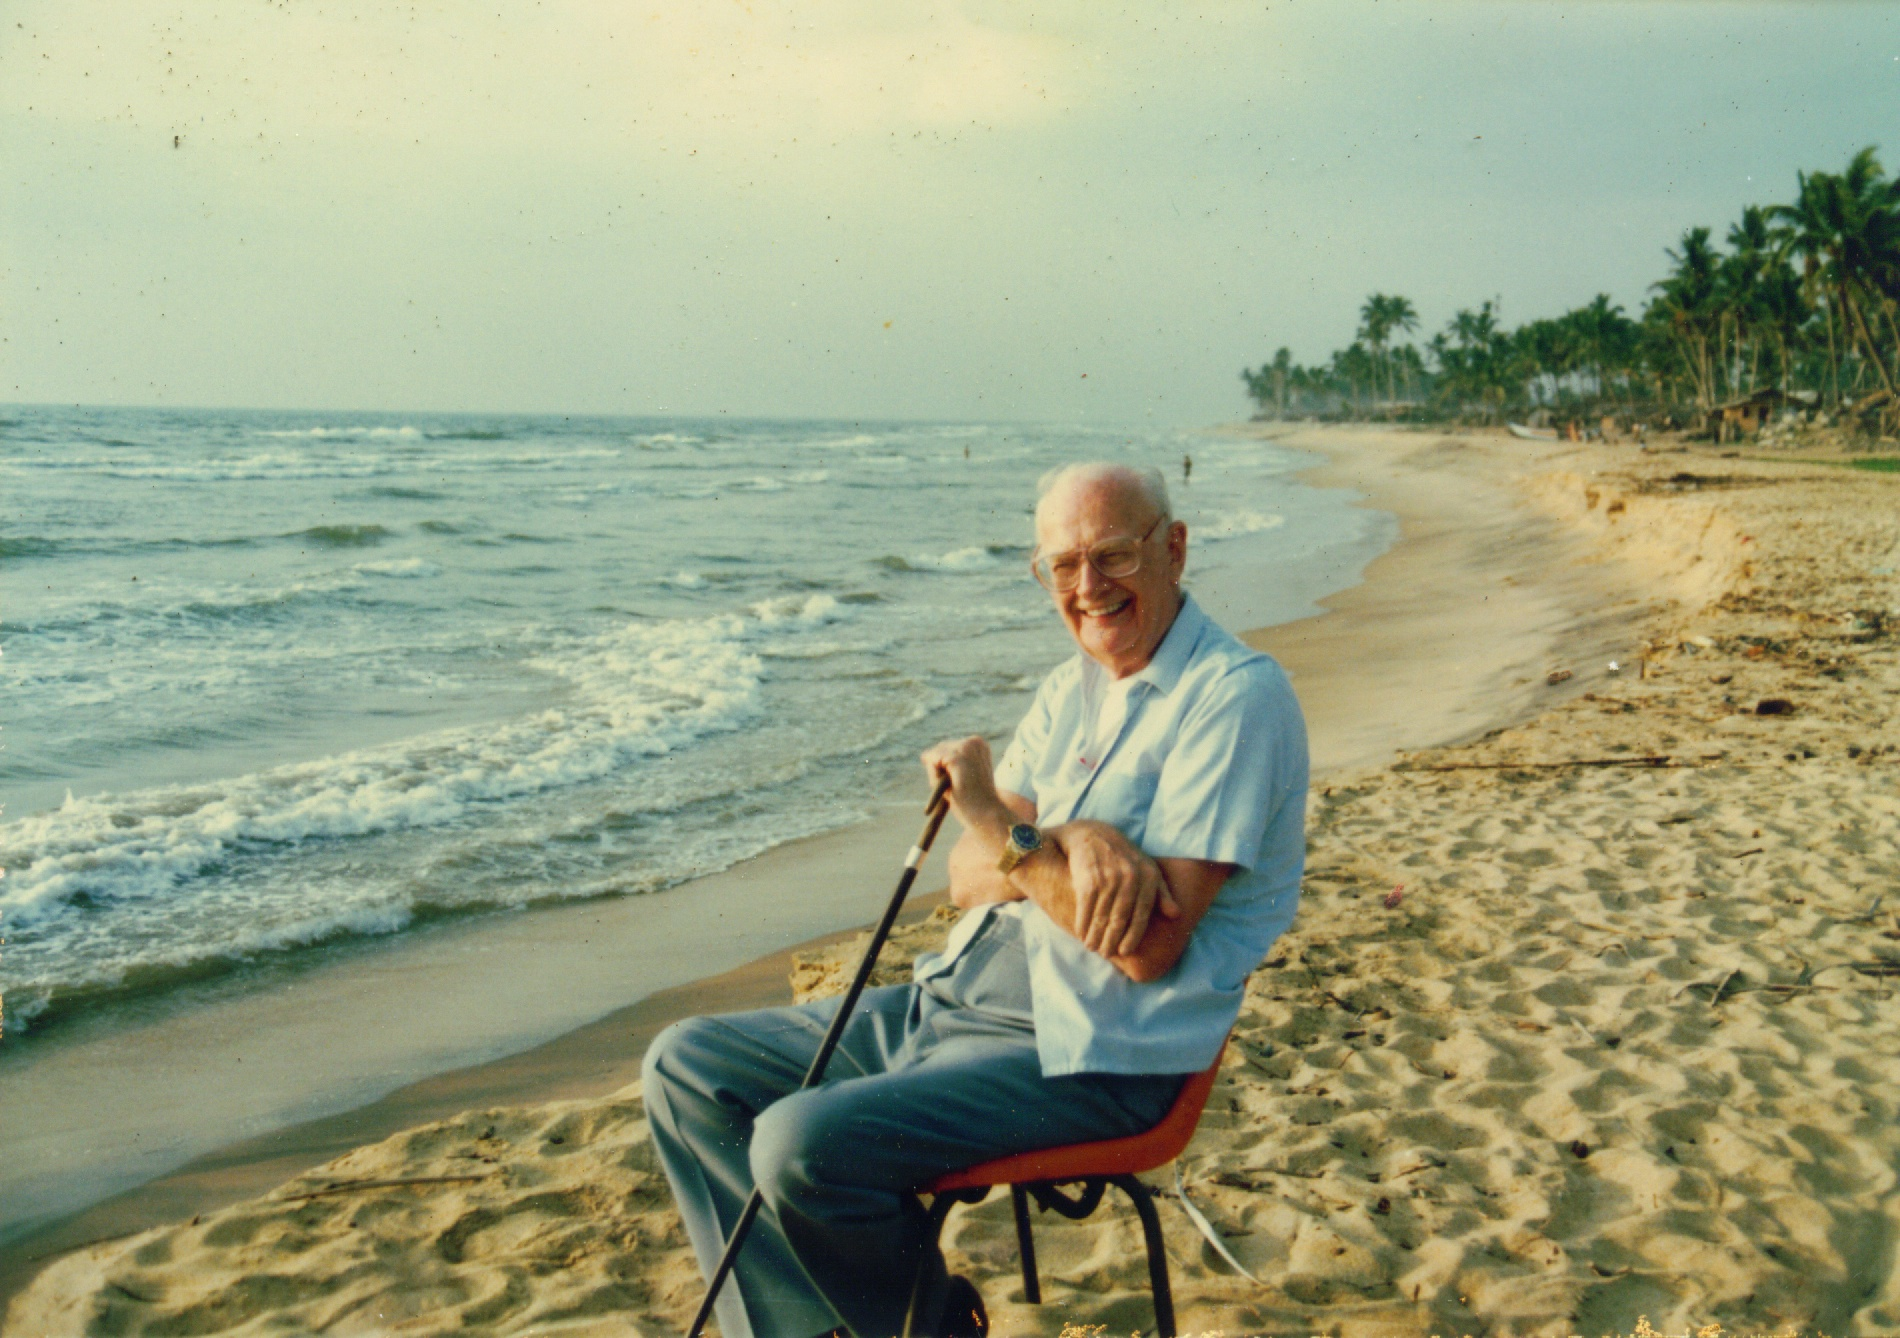 Arthur C Clarke enjoys one of his favourite beaches in Sri Lanka, where he lived from 1956 to 2008